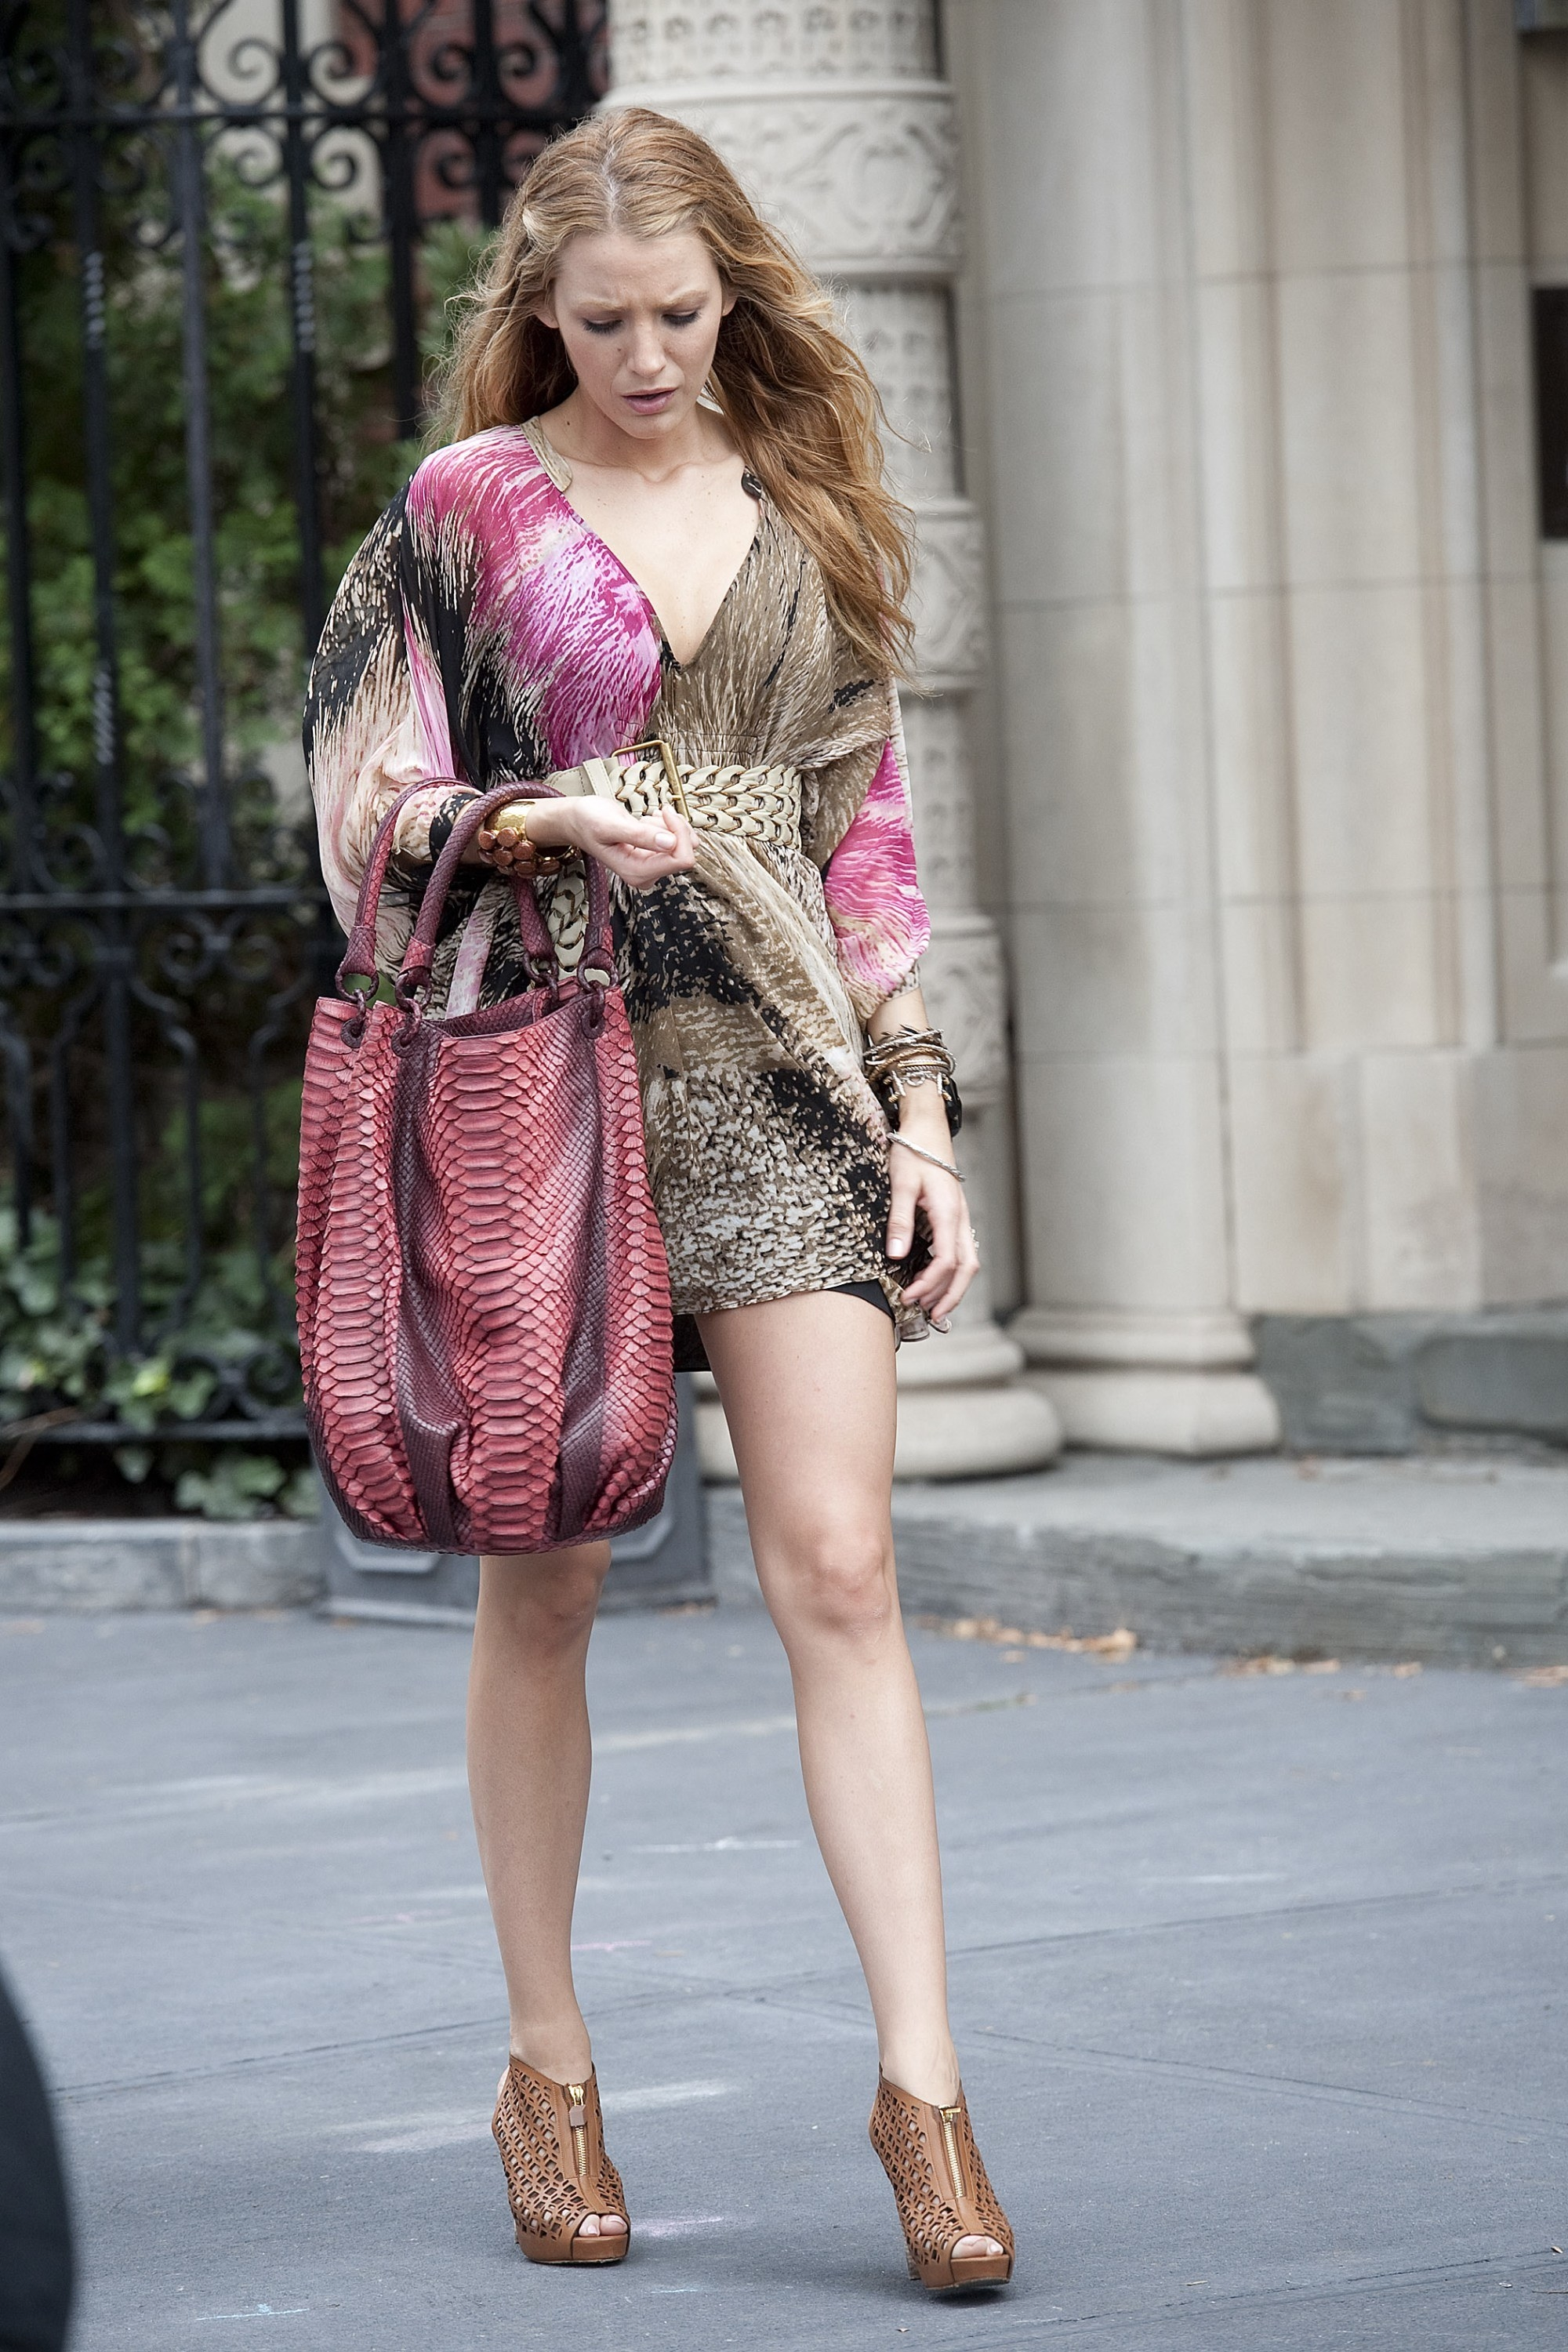 Serena in a loose v neck long sleeve tie dye short dress with a braided belt and booties